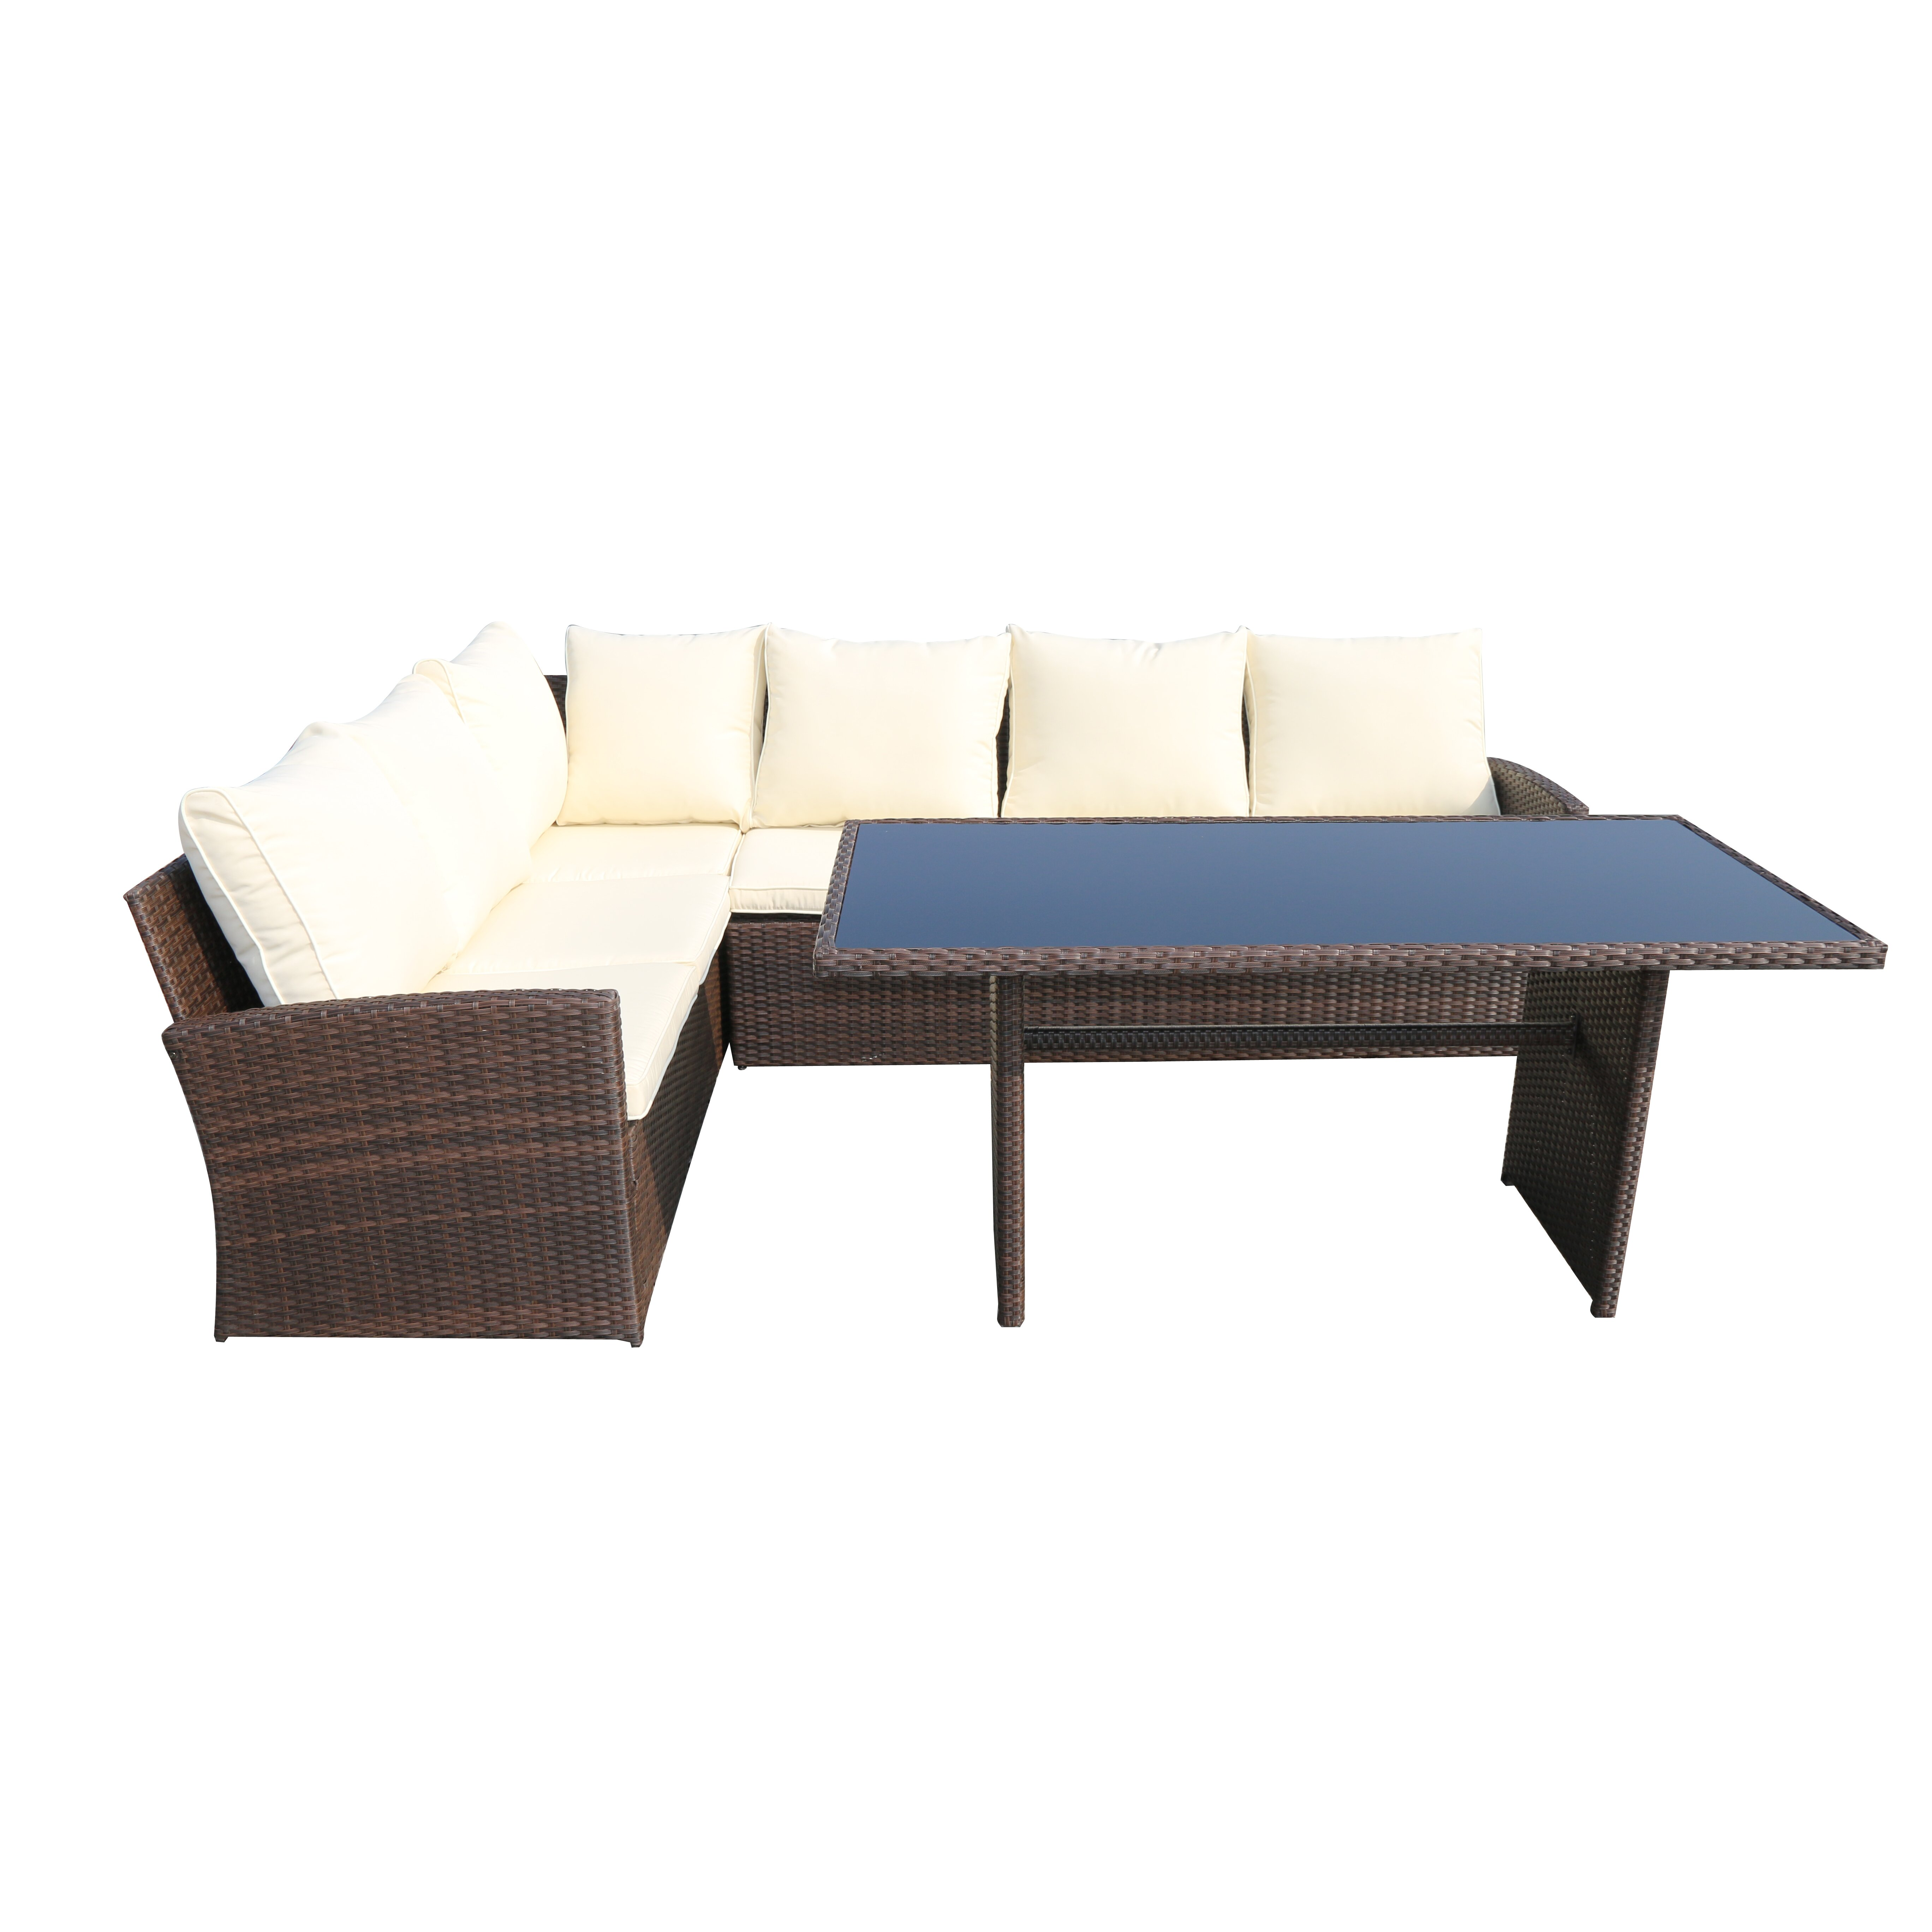 SunTime Outdoor Living Barcelona 3 Piece Seating Group ... on Suntime Outdoor Living id=76267